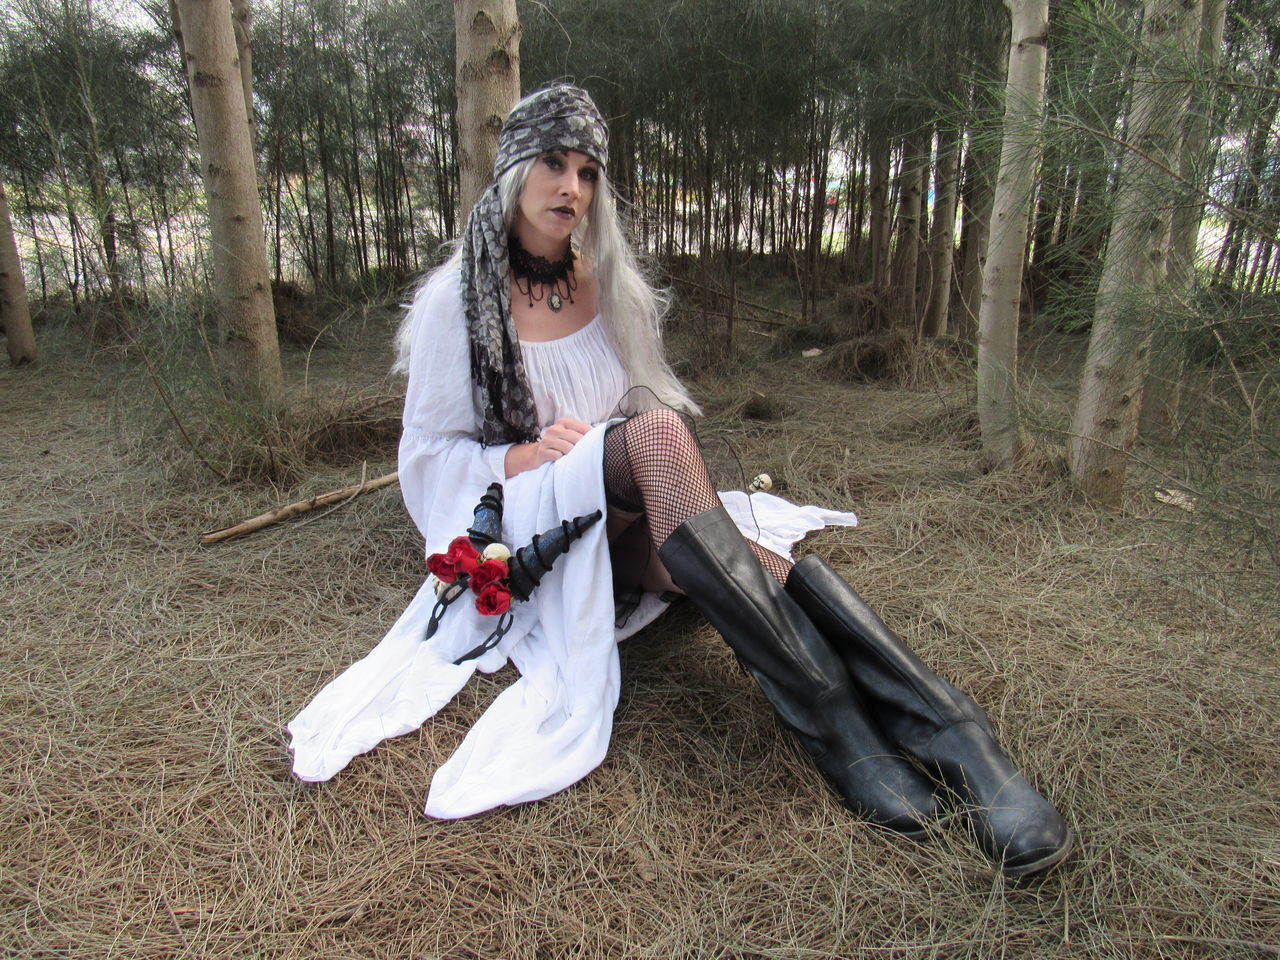 Deep in the Forrest Beauty In Nature Being Alone Female Model Forrest Photography Leather Photo Shoot Posing For The Camera Scarf Season Setting On Ground White Clothing Premium Collection